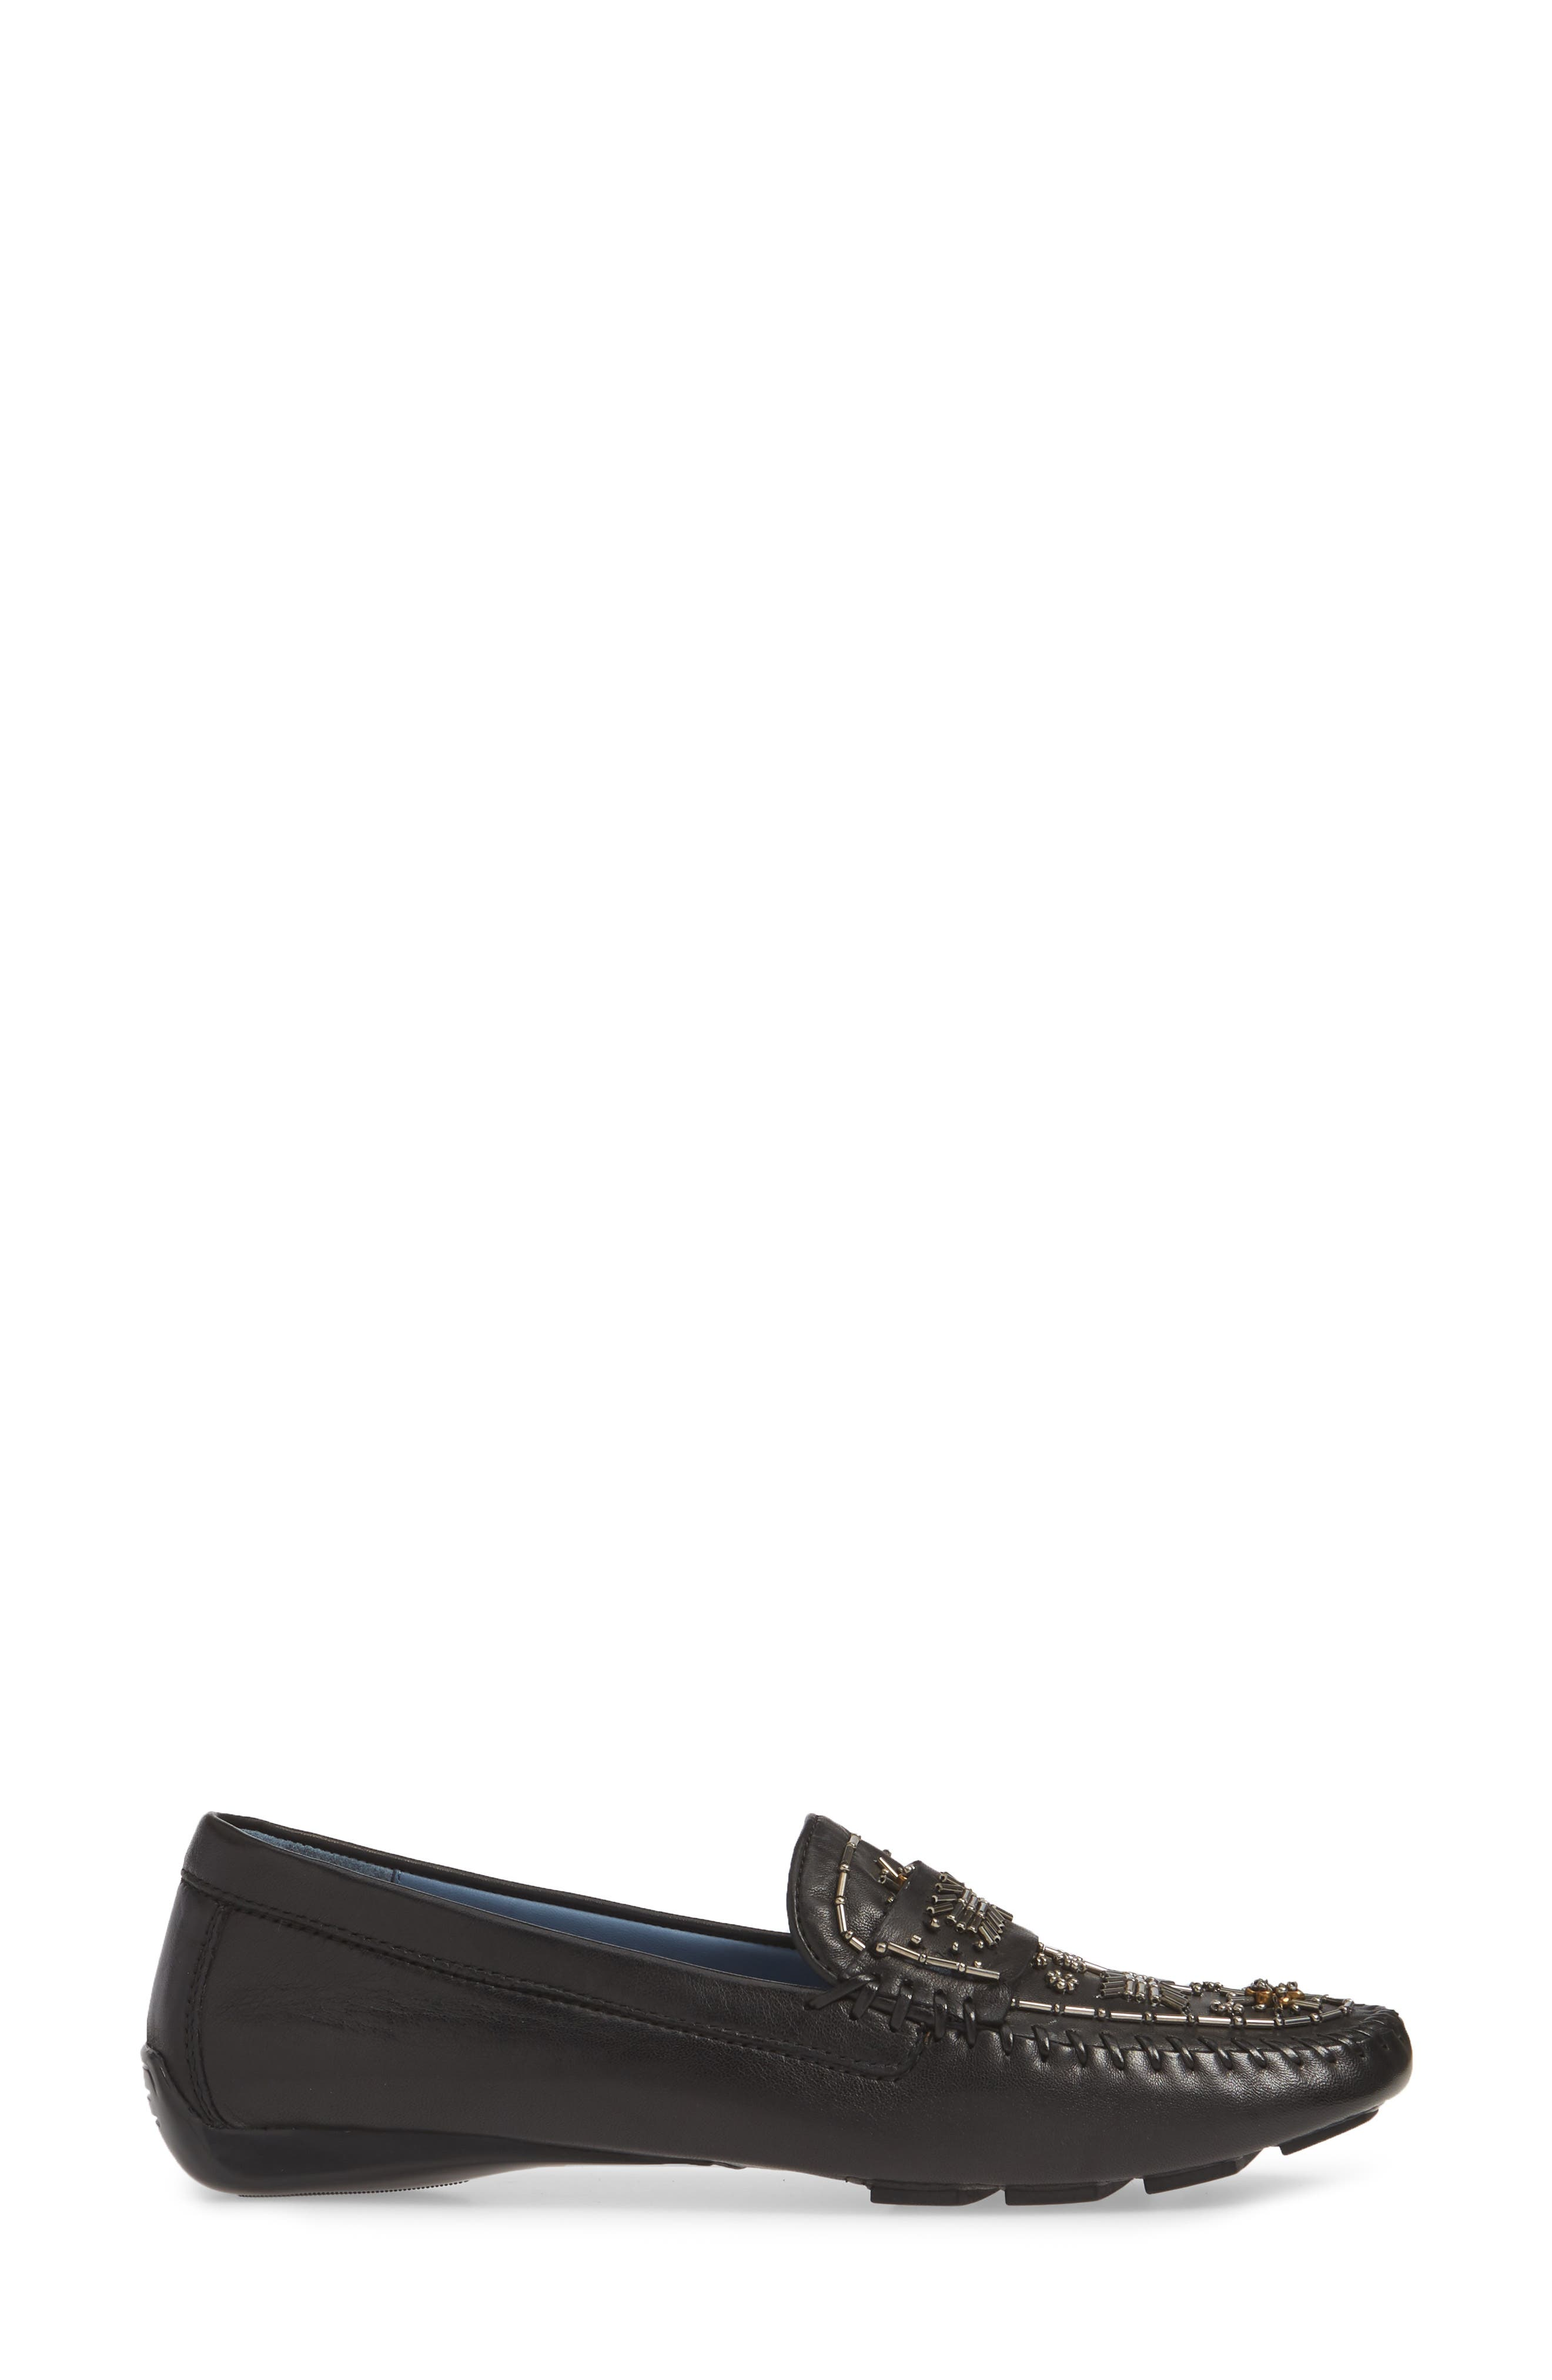 ROBERT ZUR, Majorca Embellished Loafer, Alternate thumbnail 3, color, BLACK TGLOVE